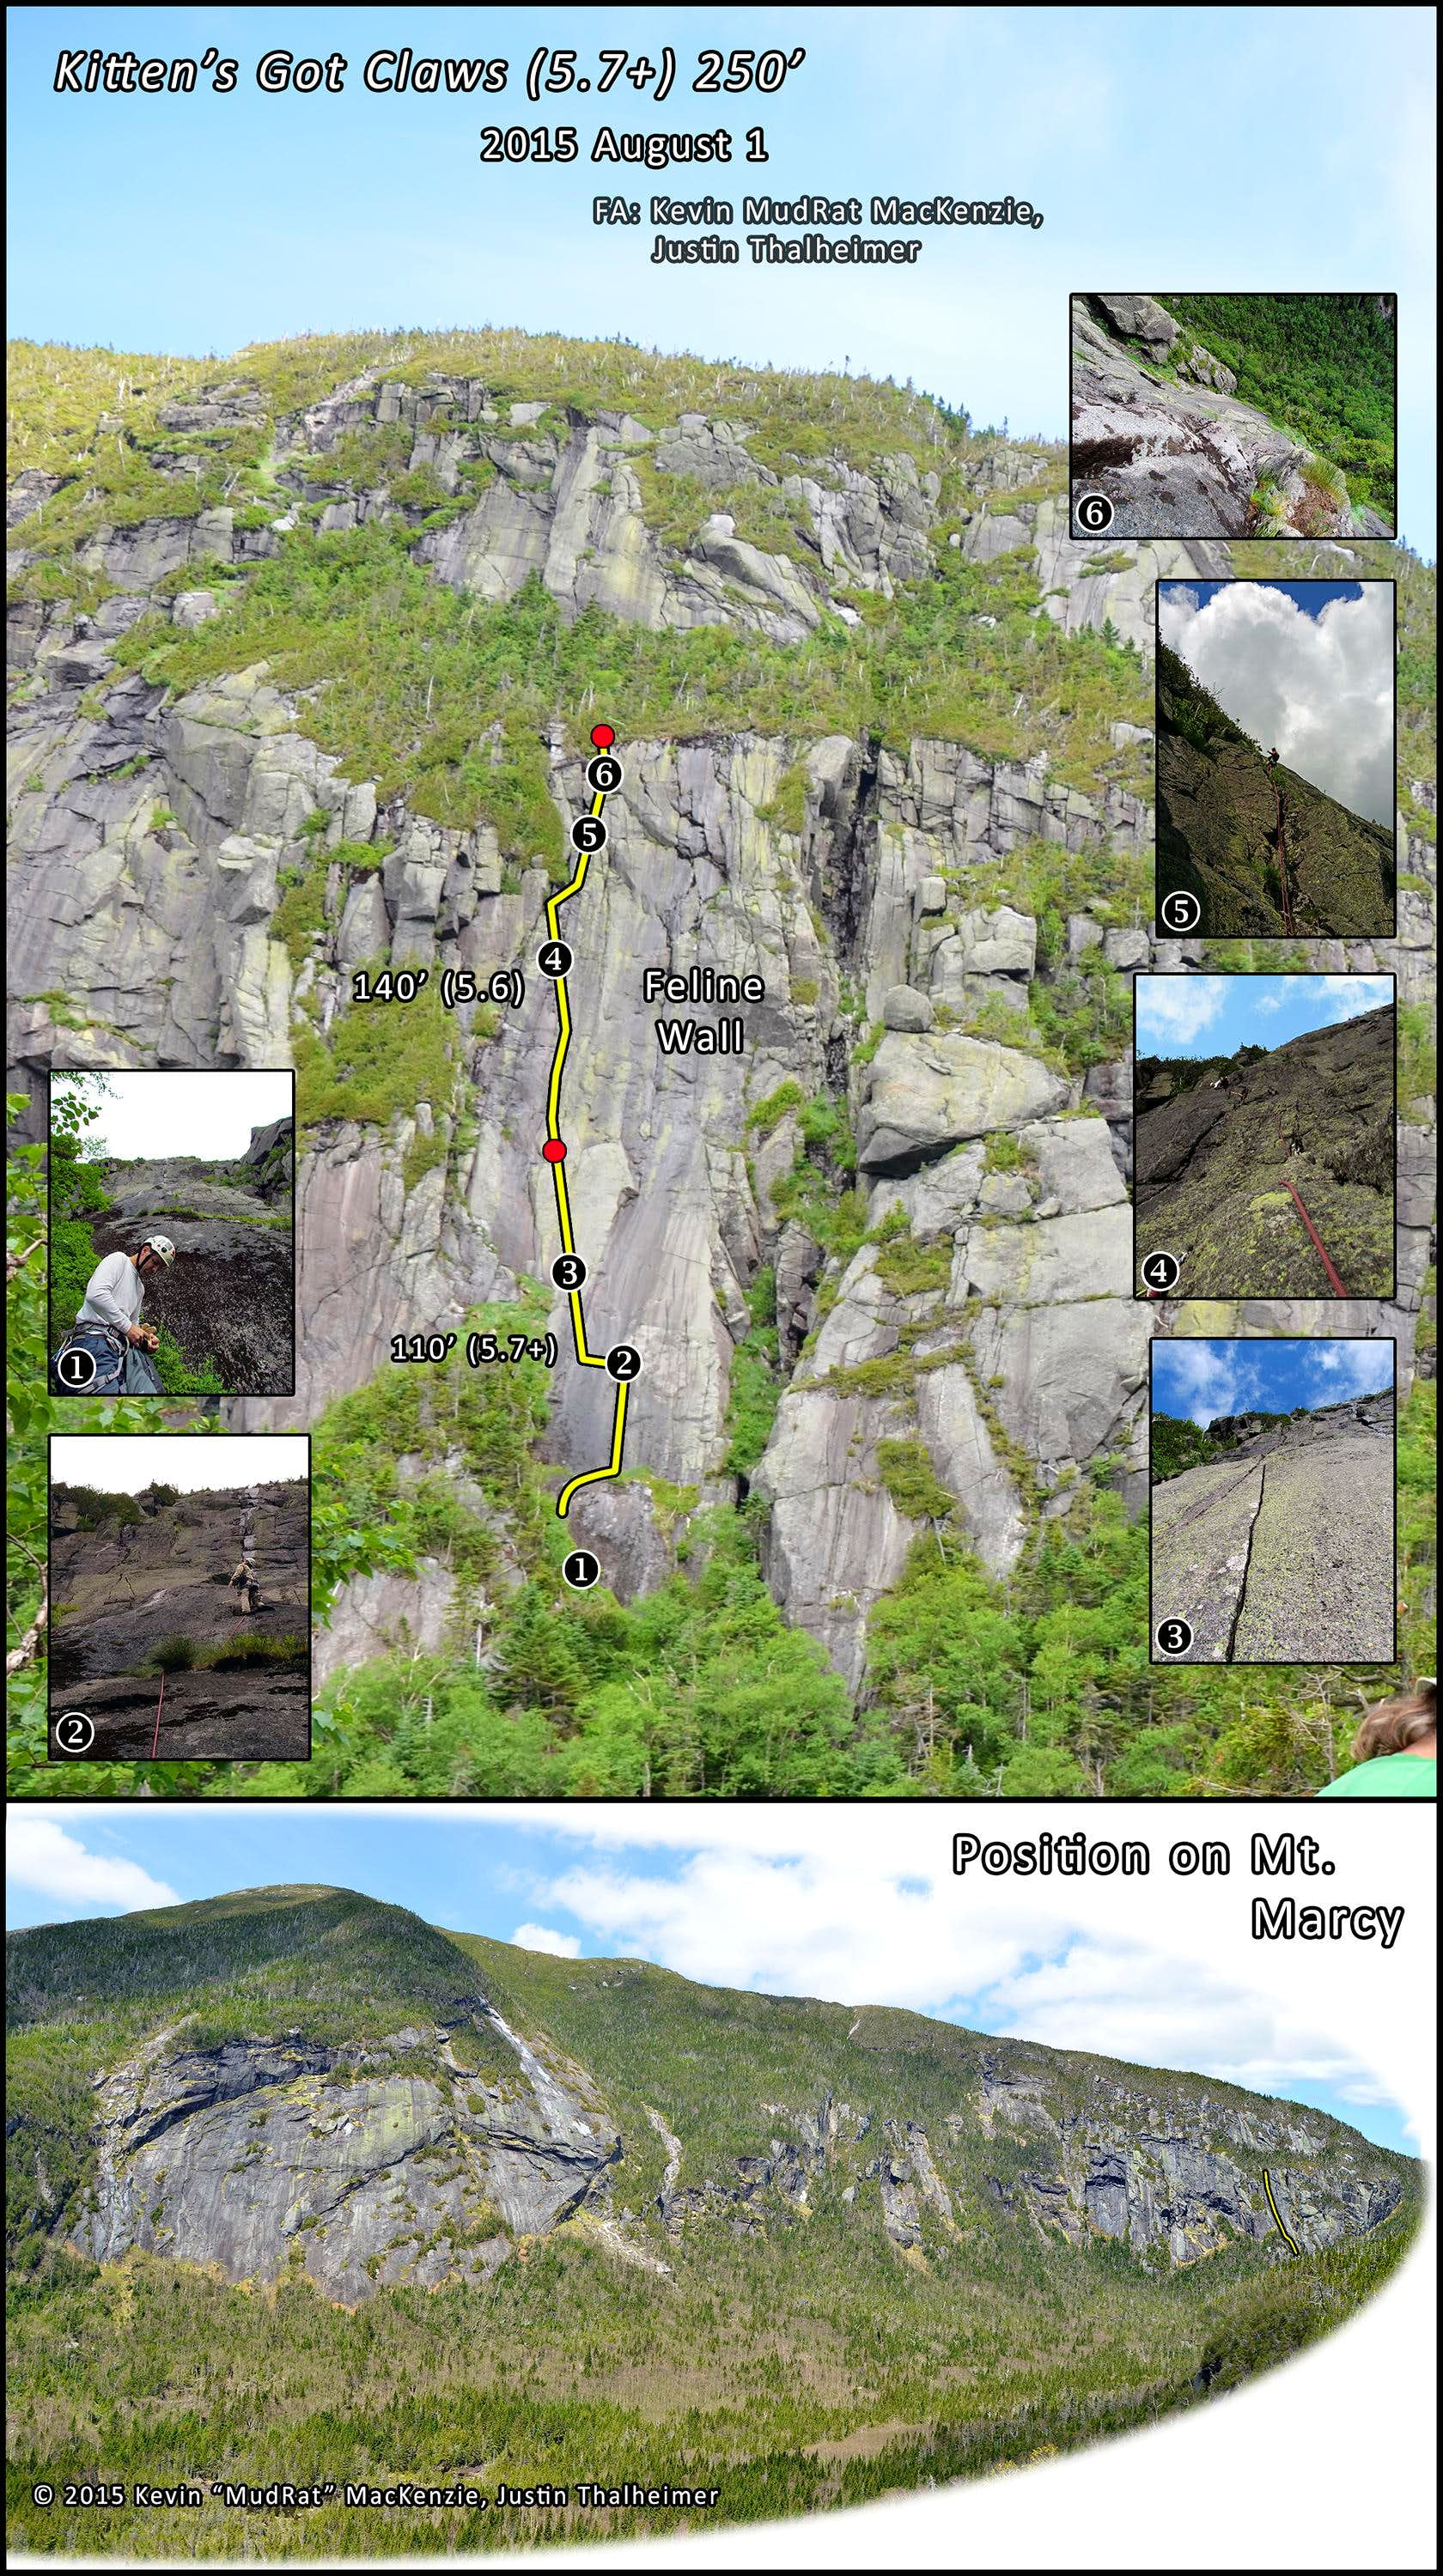 Panther Gorge-A New Marcy Rock Climbing Route (Kitten\'s Got Claws)